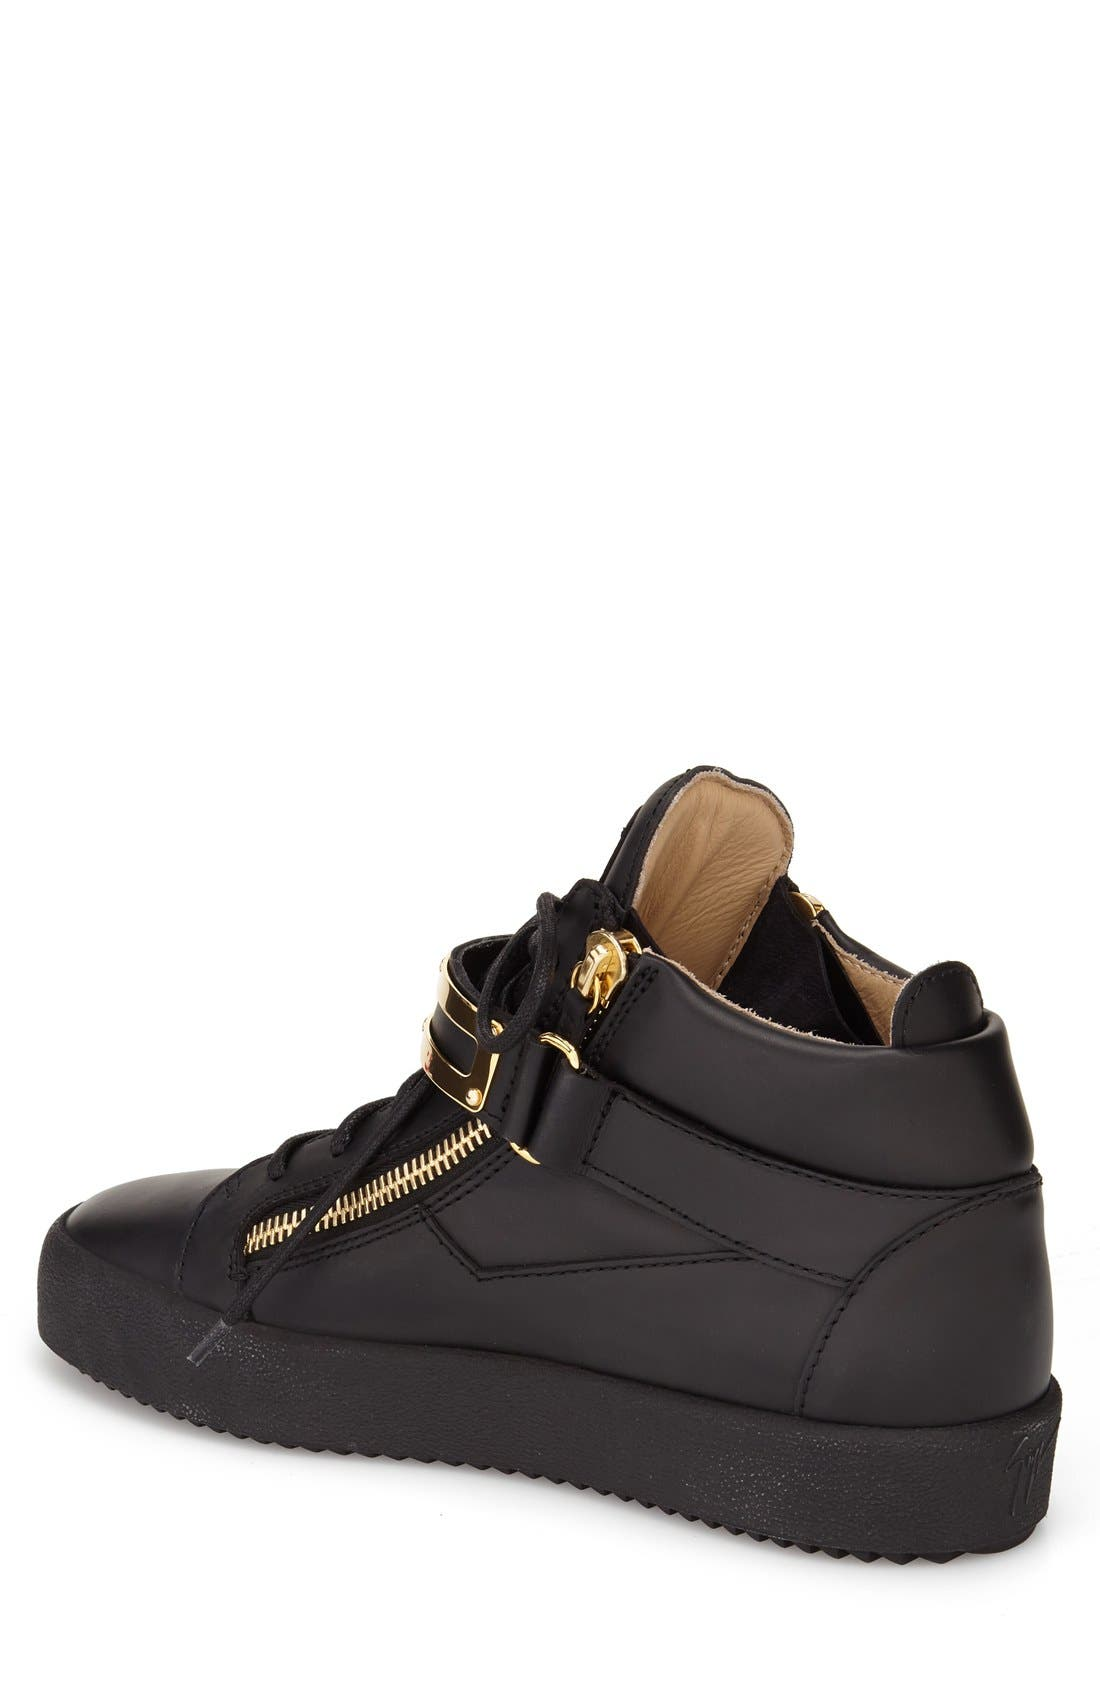 Side Zip High Top Sneaker,                             Alternate thumbnail 2, color,                             Nero Leather